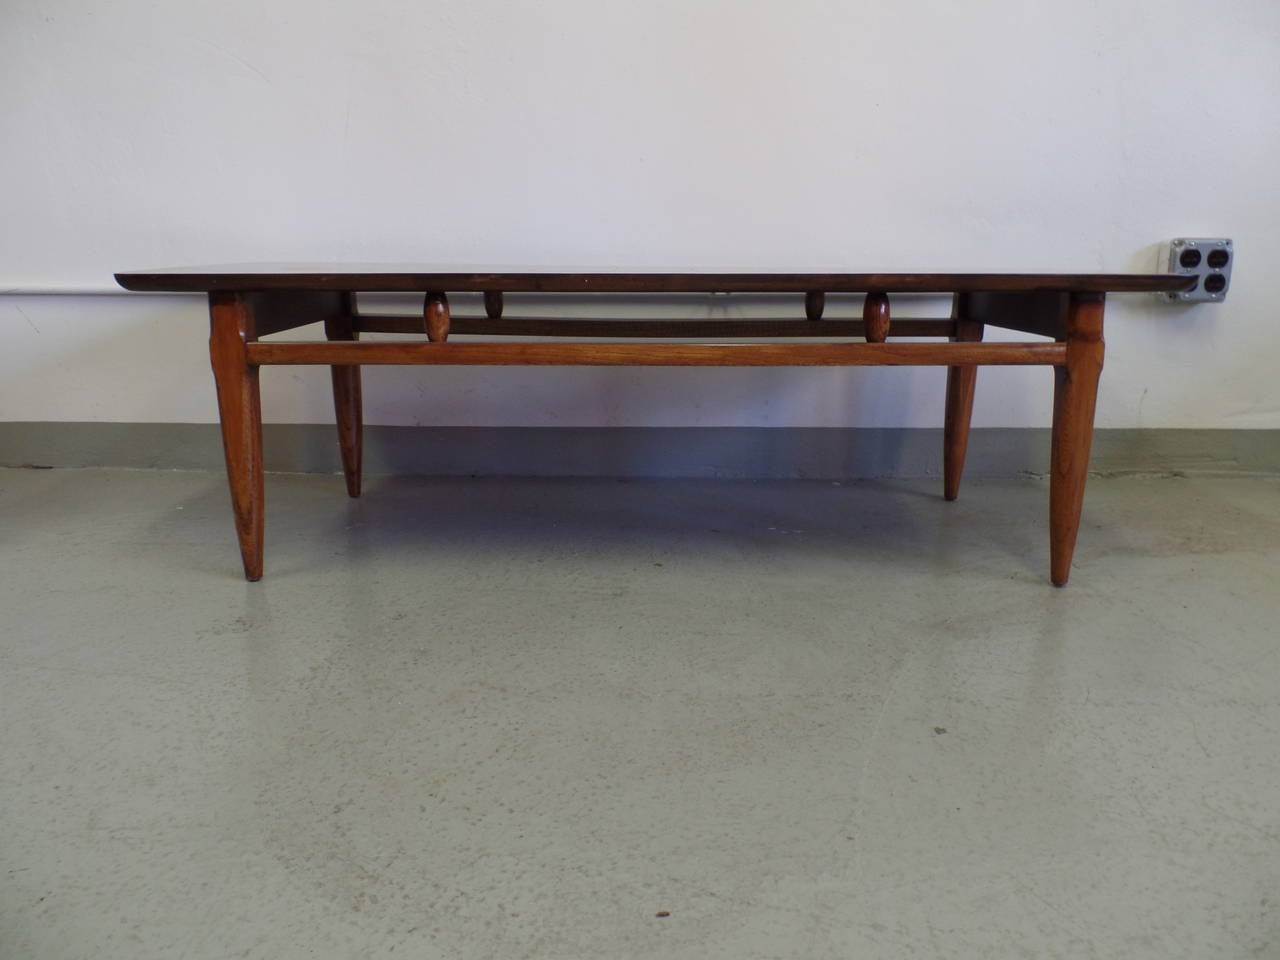 Elegant and tasteful cantilevered Italian Mid-Century Modern cocktail table with an inlaid (intarsia) top.